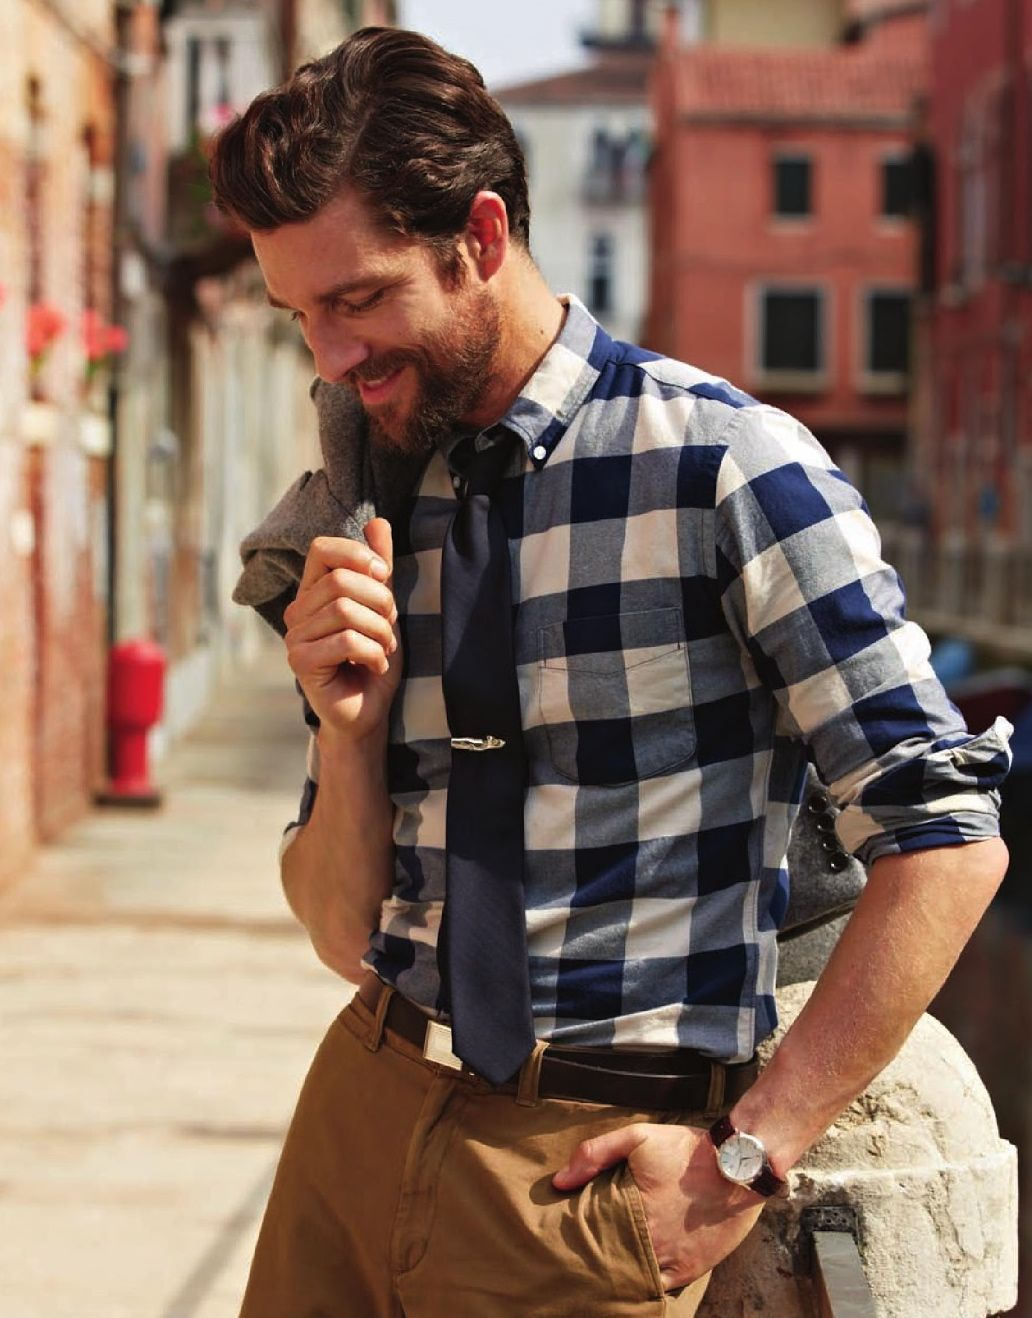 Pin by Alyssa Kiefer on hot guys  Pinterest  Plaid Man style and